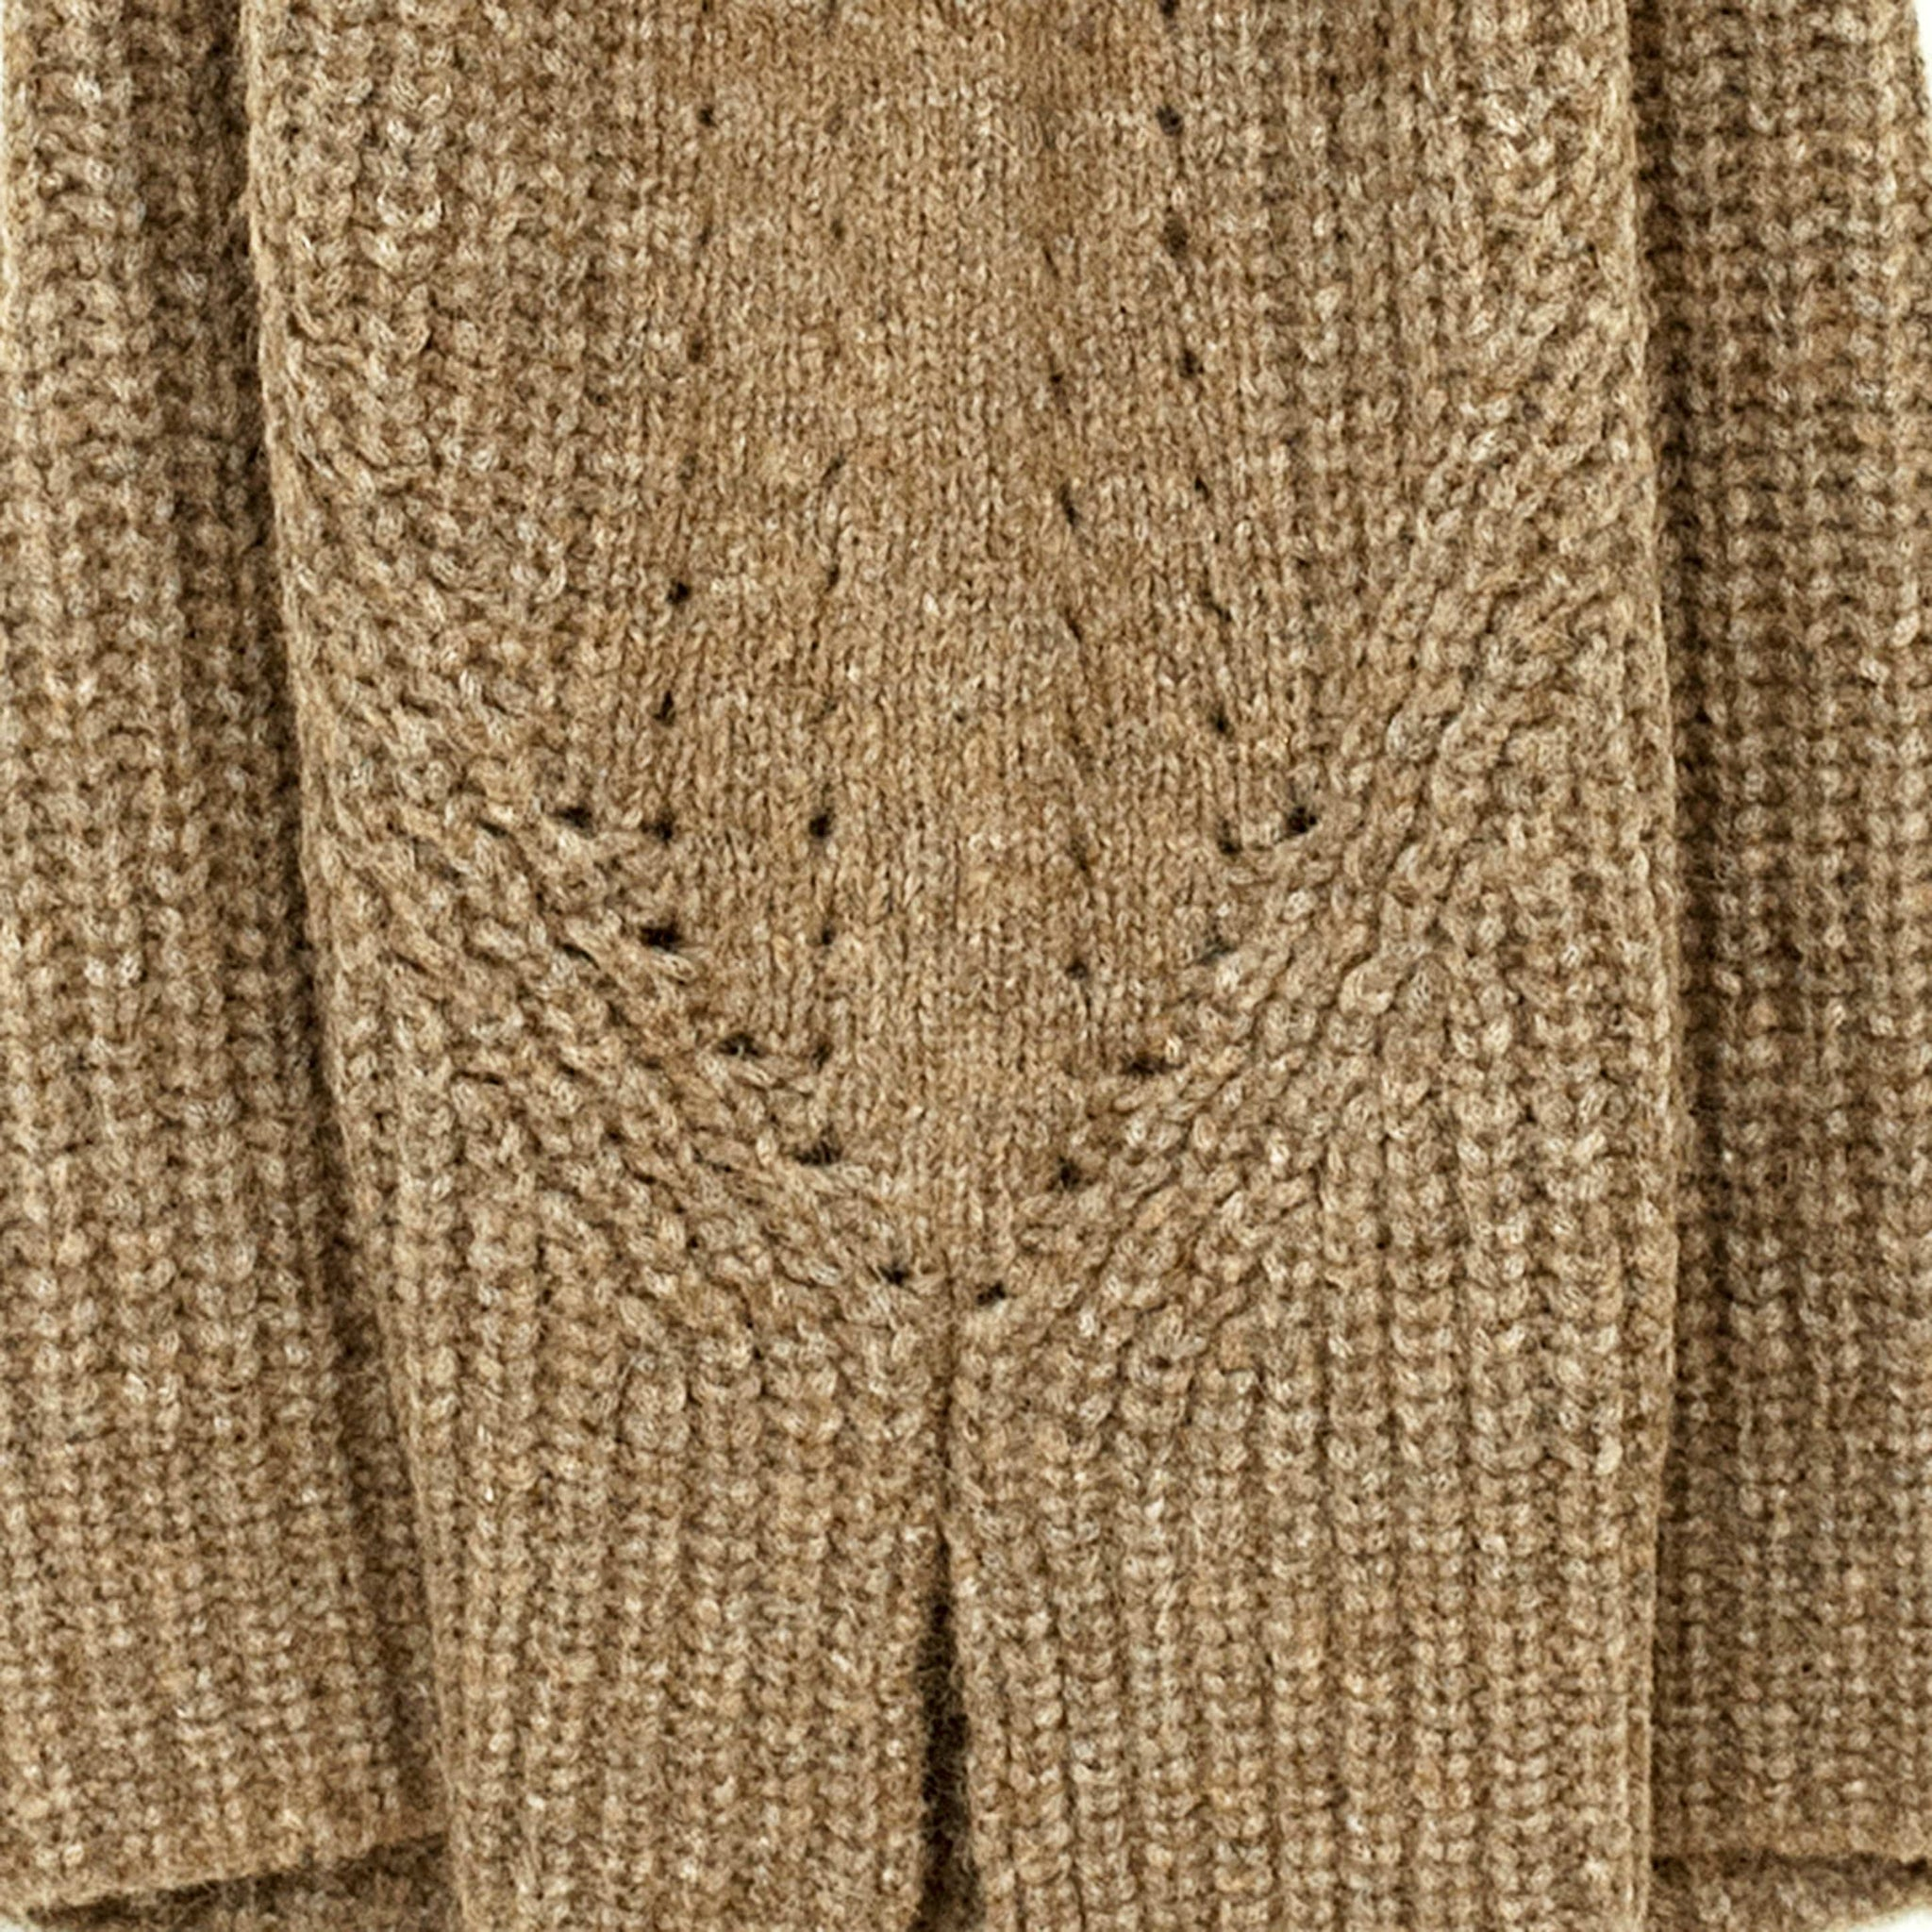 foundation sweater